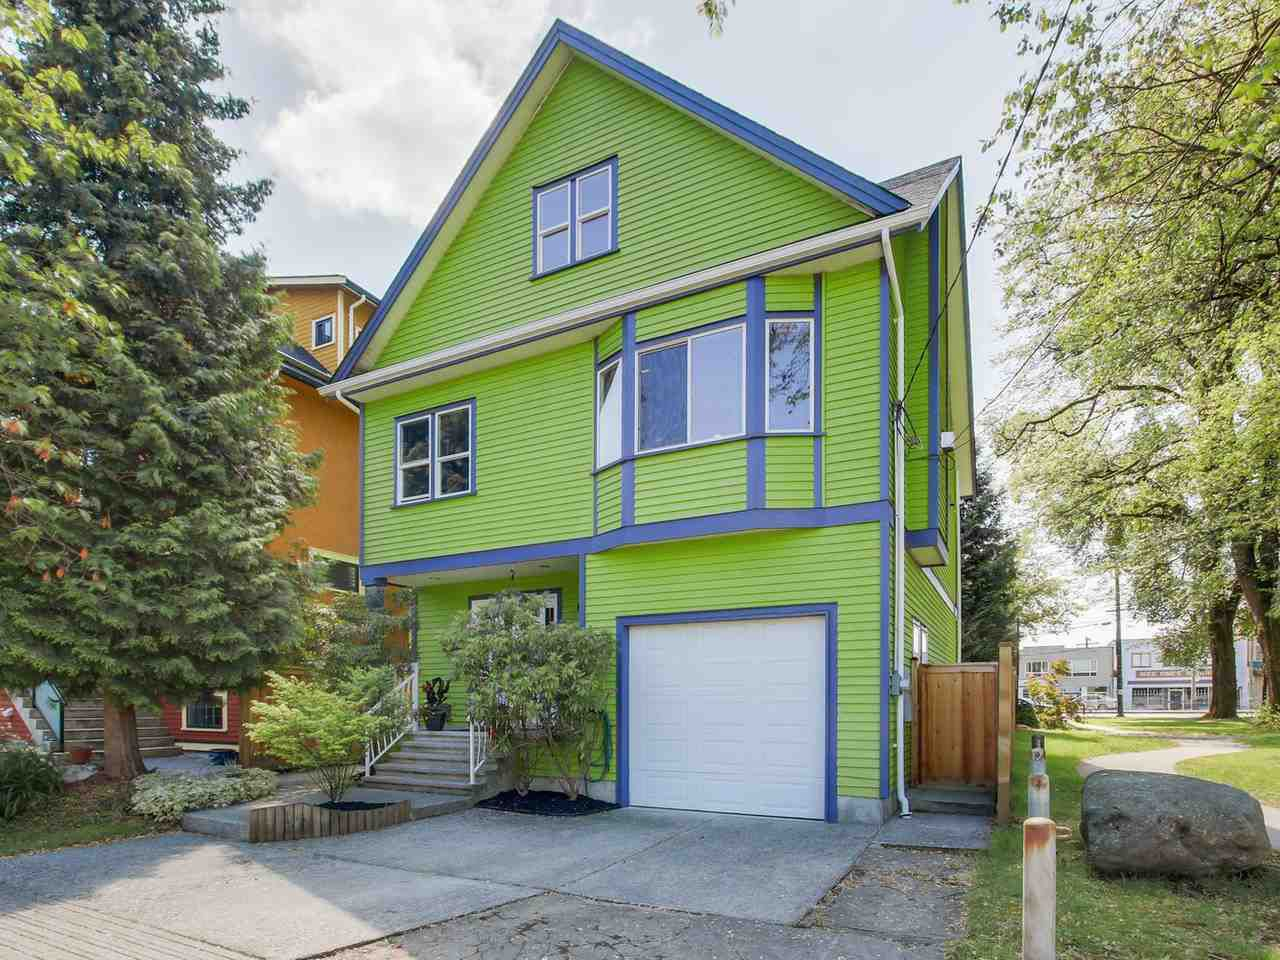 Main Photo: 600 E 14TH AVENUE in Vancouver: Mount Pleasant VE House for sale (Vancouver East)  : MLS®# R2074713